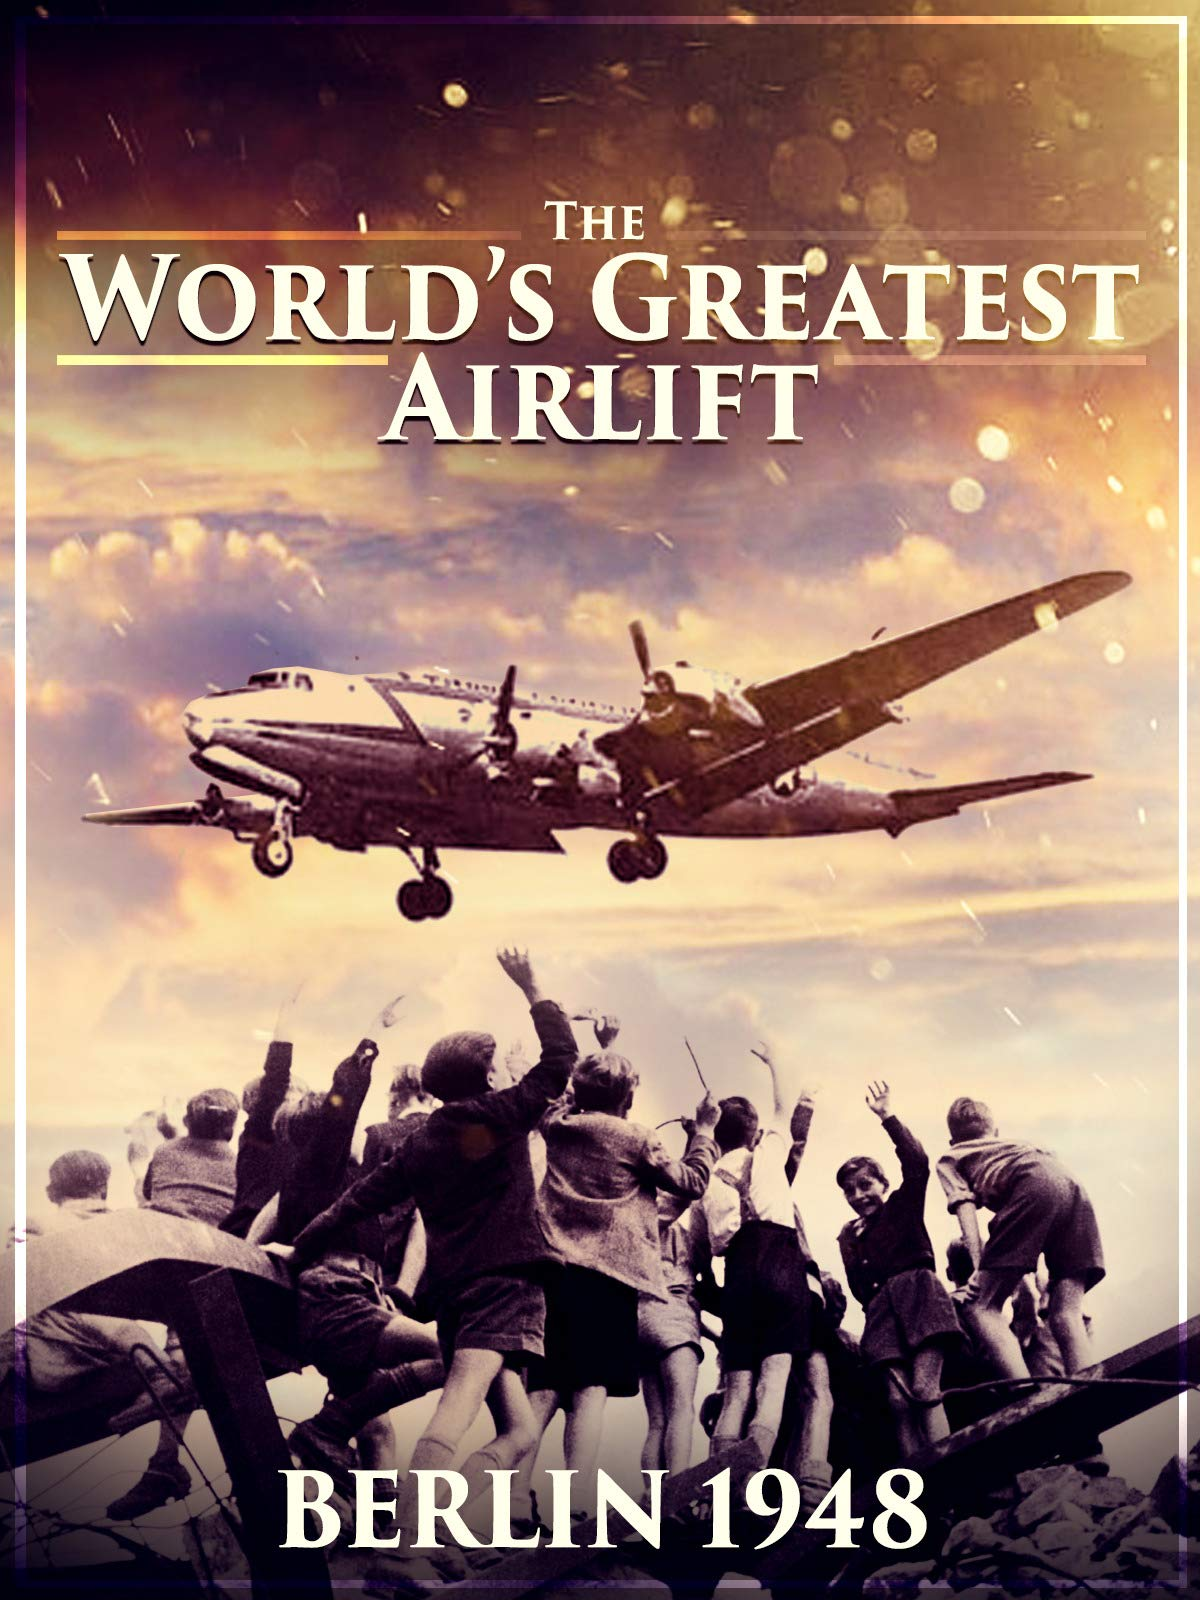 The World's Greatest Airlift - Berlin 1948 on Amazon Prime Video UK